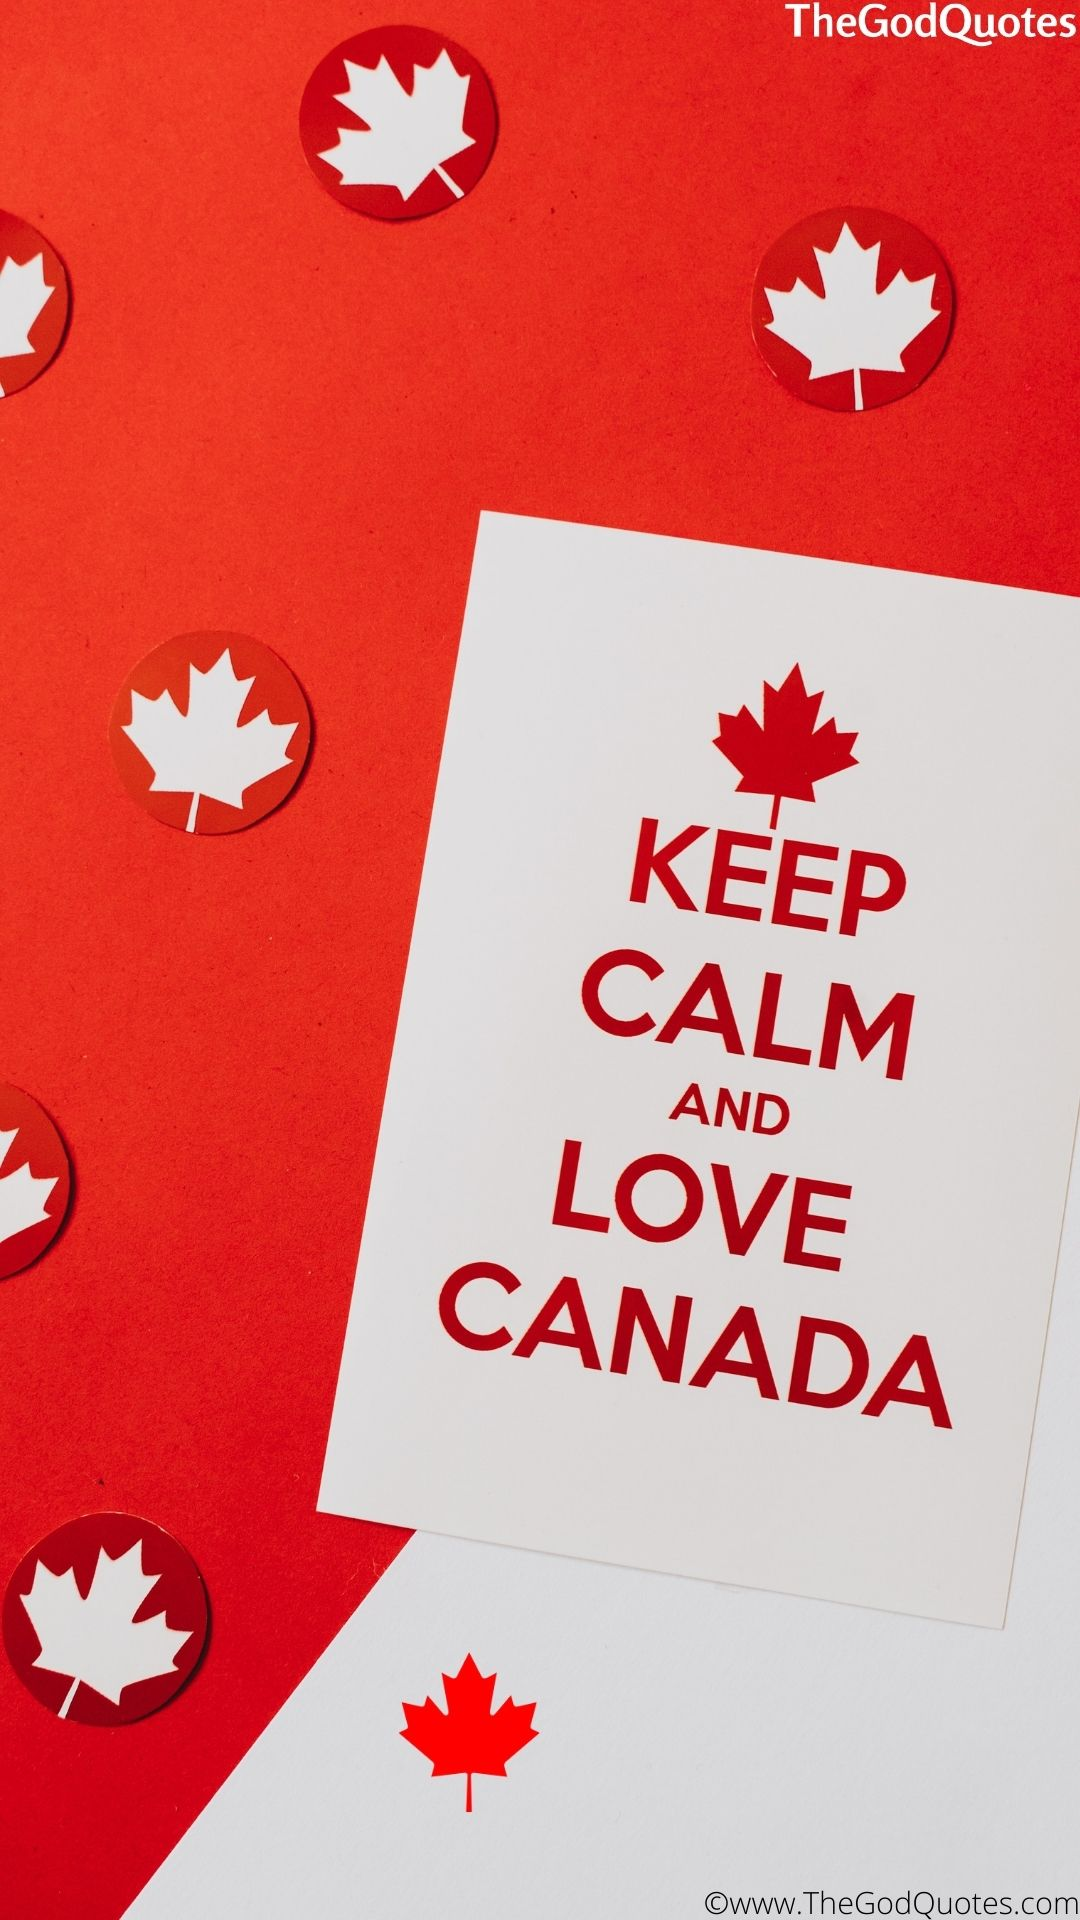 Happy Canada Day Images, Pictures, Photos, Poster, Pics, Wallpaper